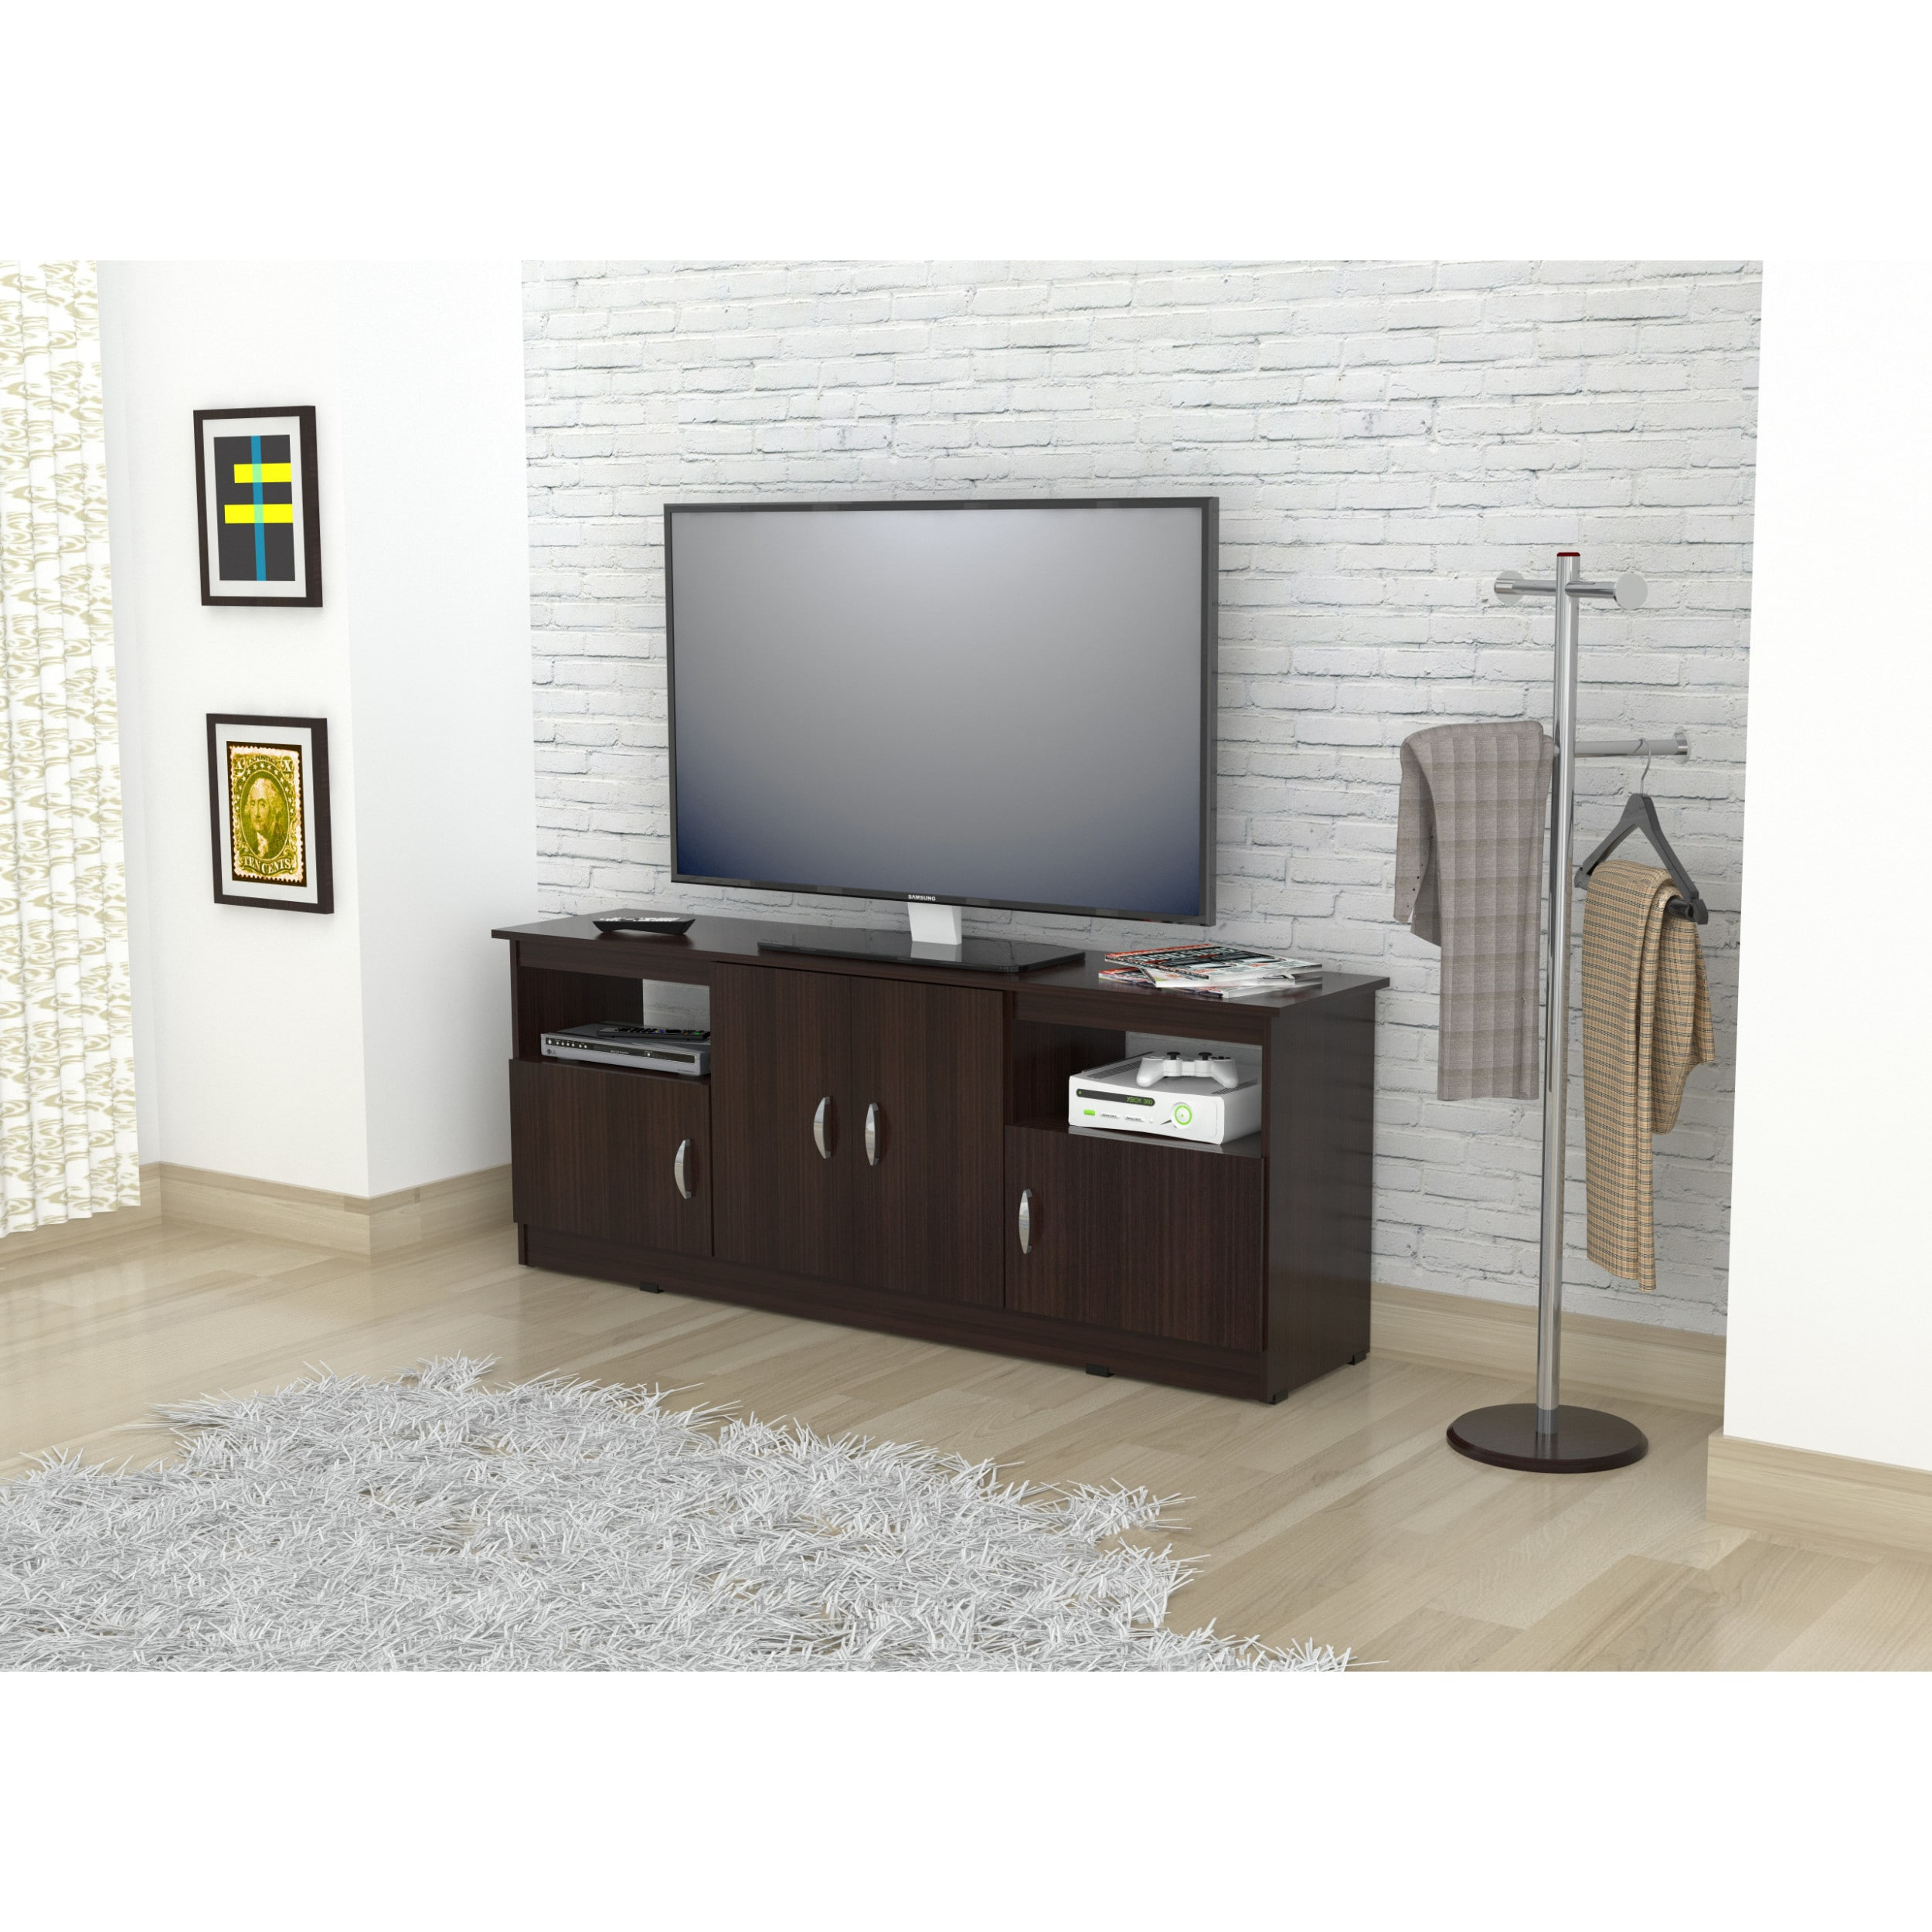 Shop Inval 60 Inch Espresso Wenge Flat Panel Tv Stand On Sale